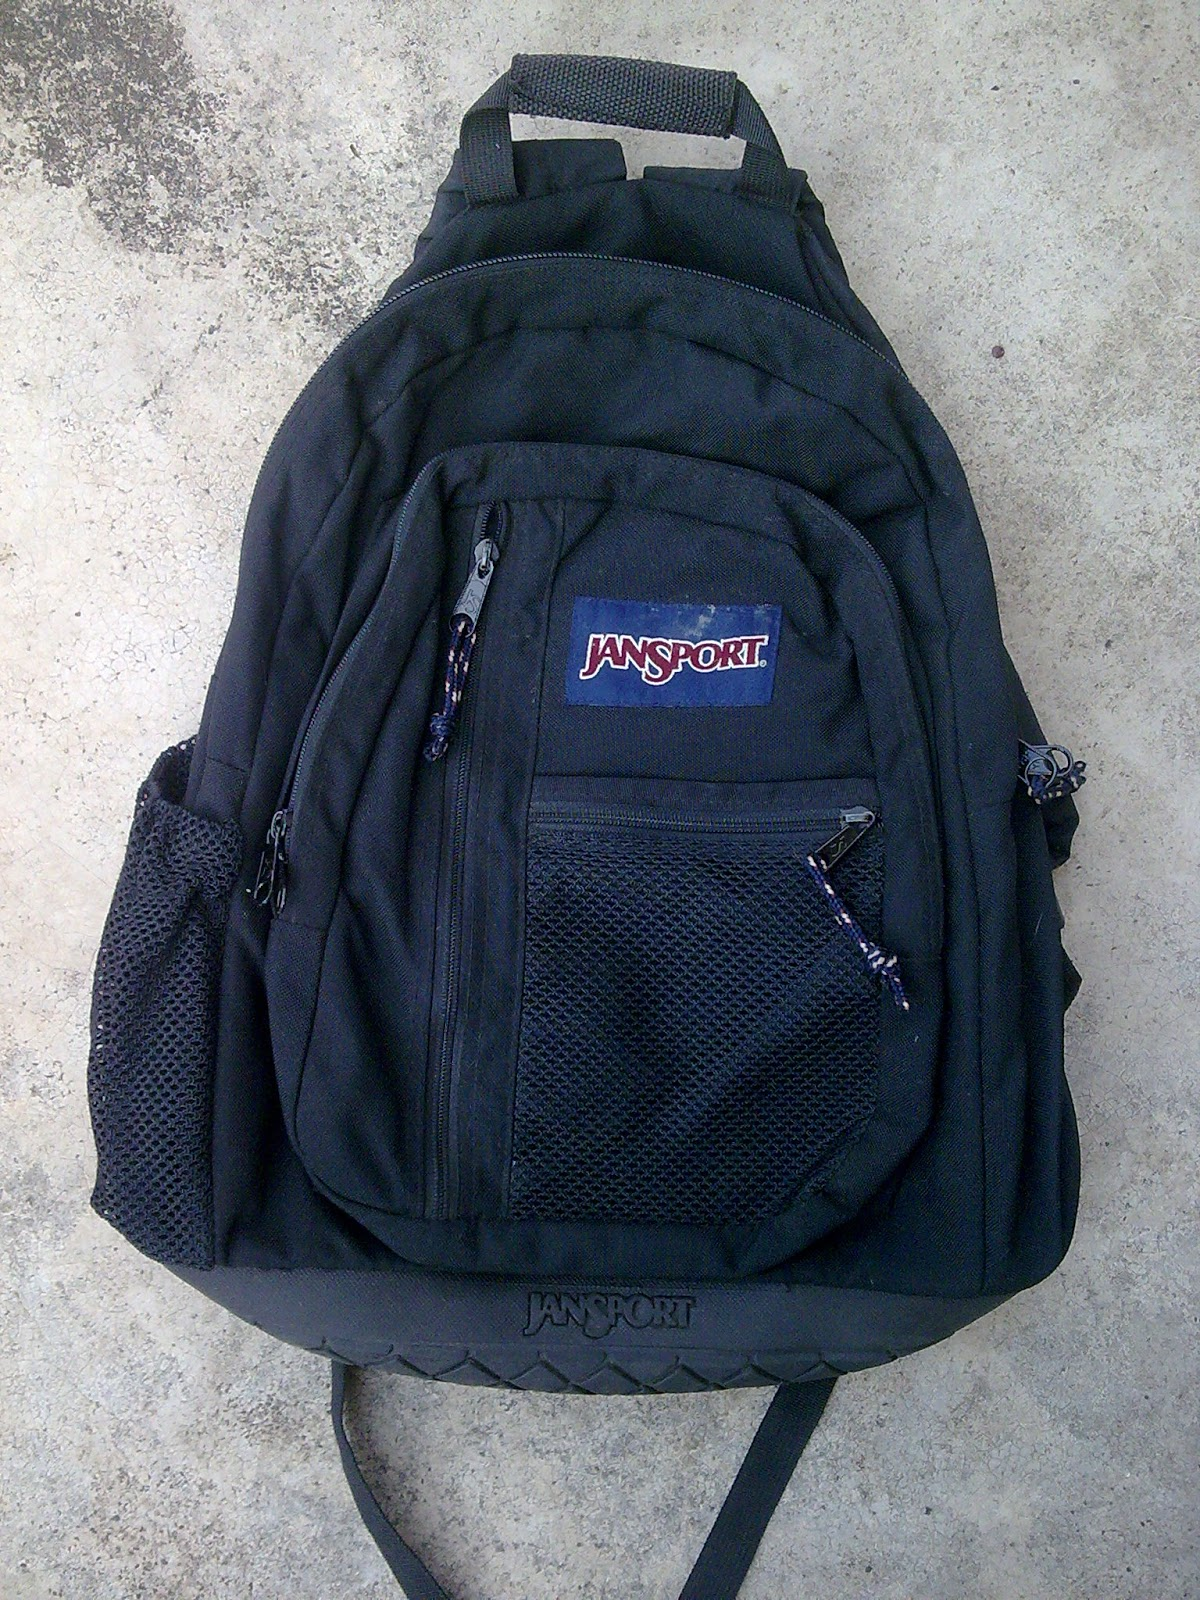 D0rayakeebag Jansport Rubber Bottom Large Bagpack Sold